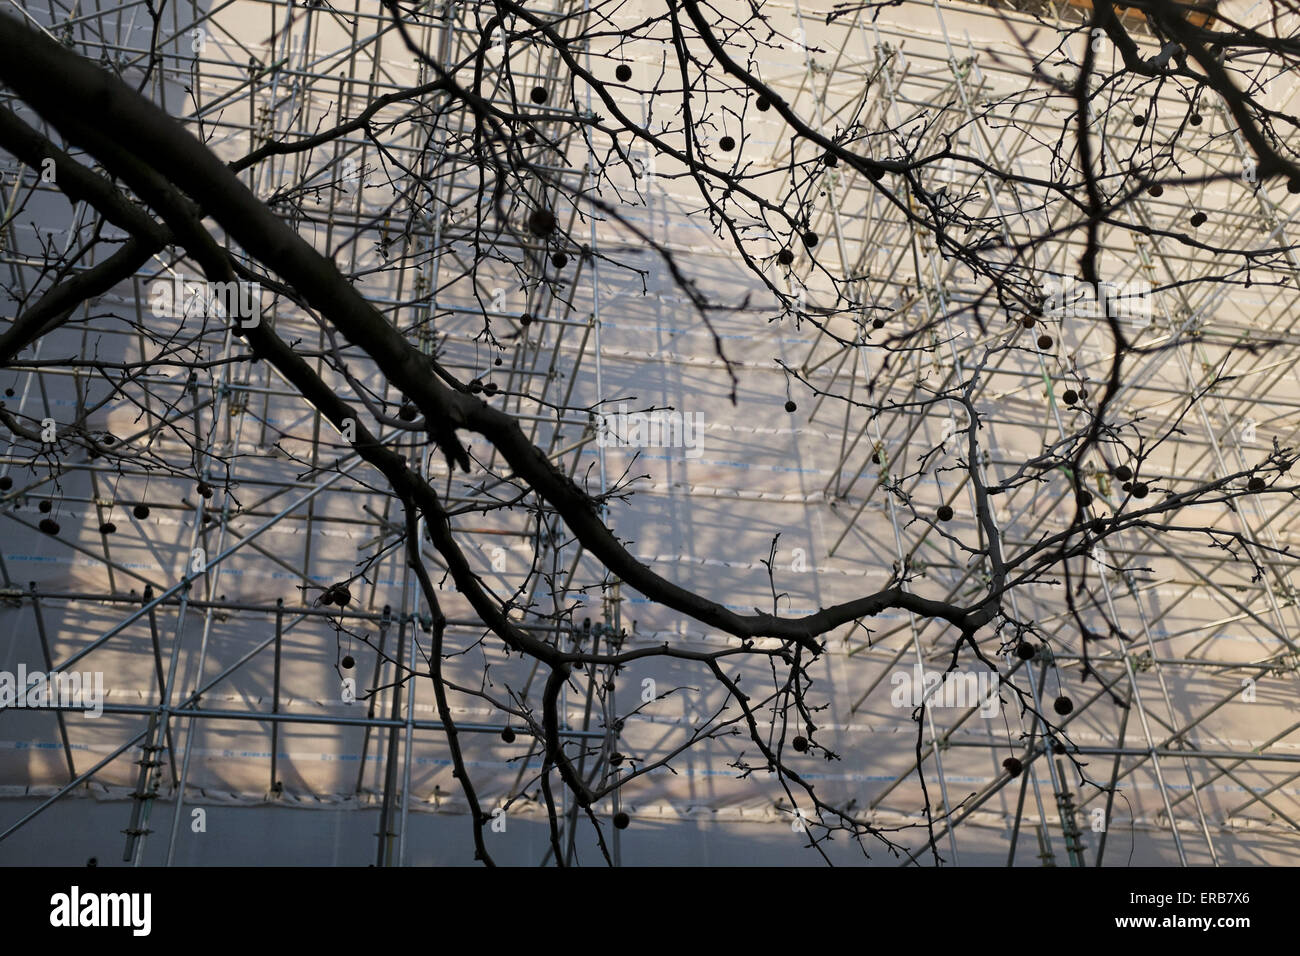 Patterns of the silhouette of tree branches against a scaffolding covered building. London, UK. - Stock Image